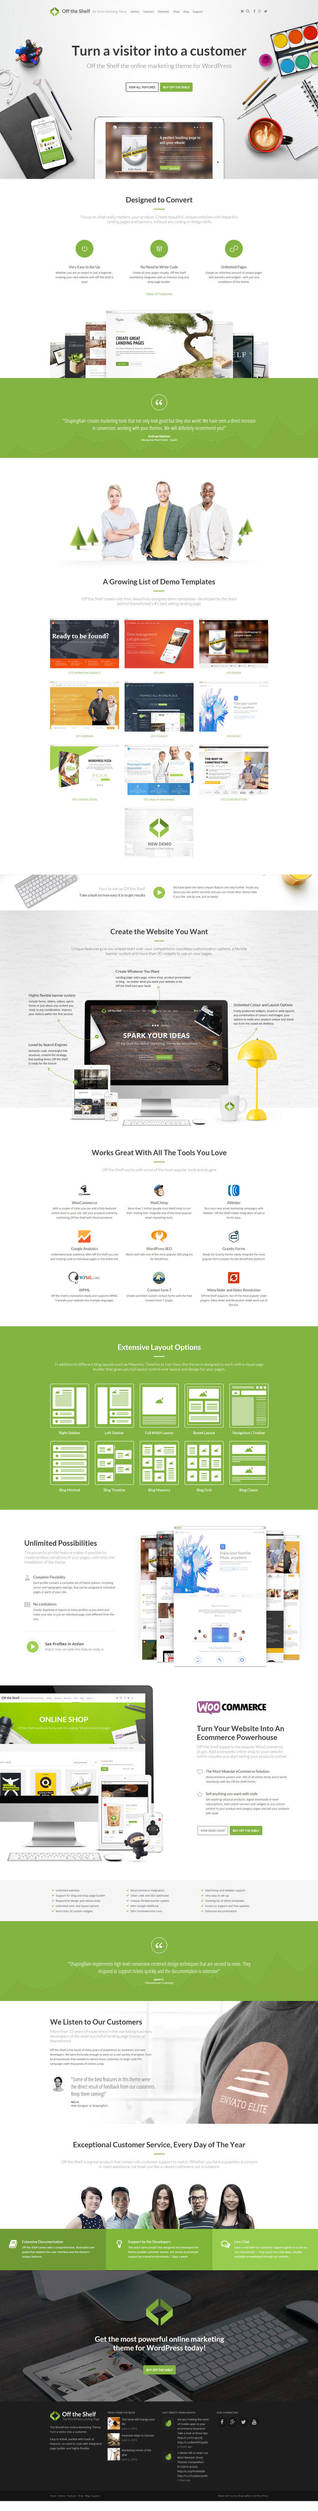 Off the Shelf - The Online Marketing Theme by NilsHuber